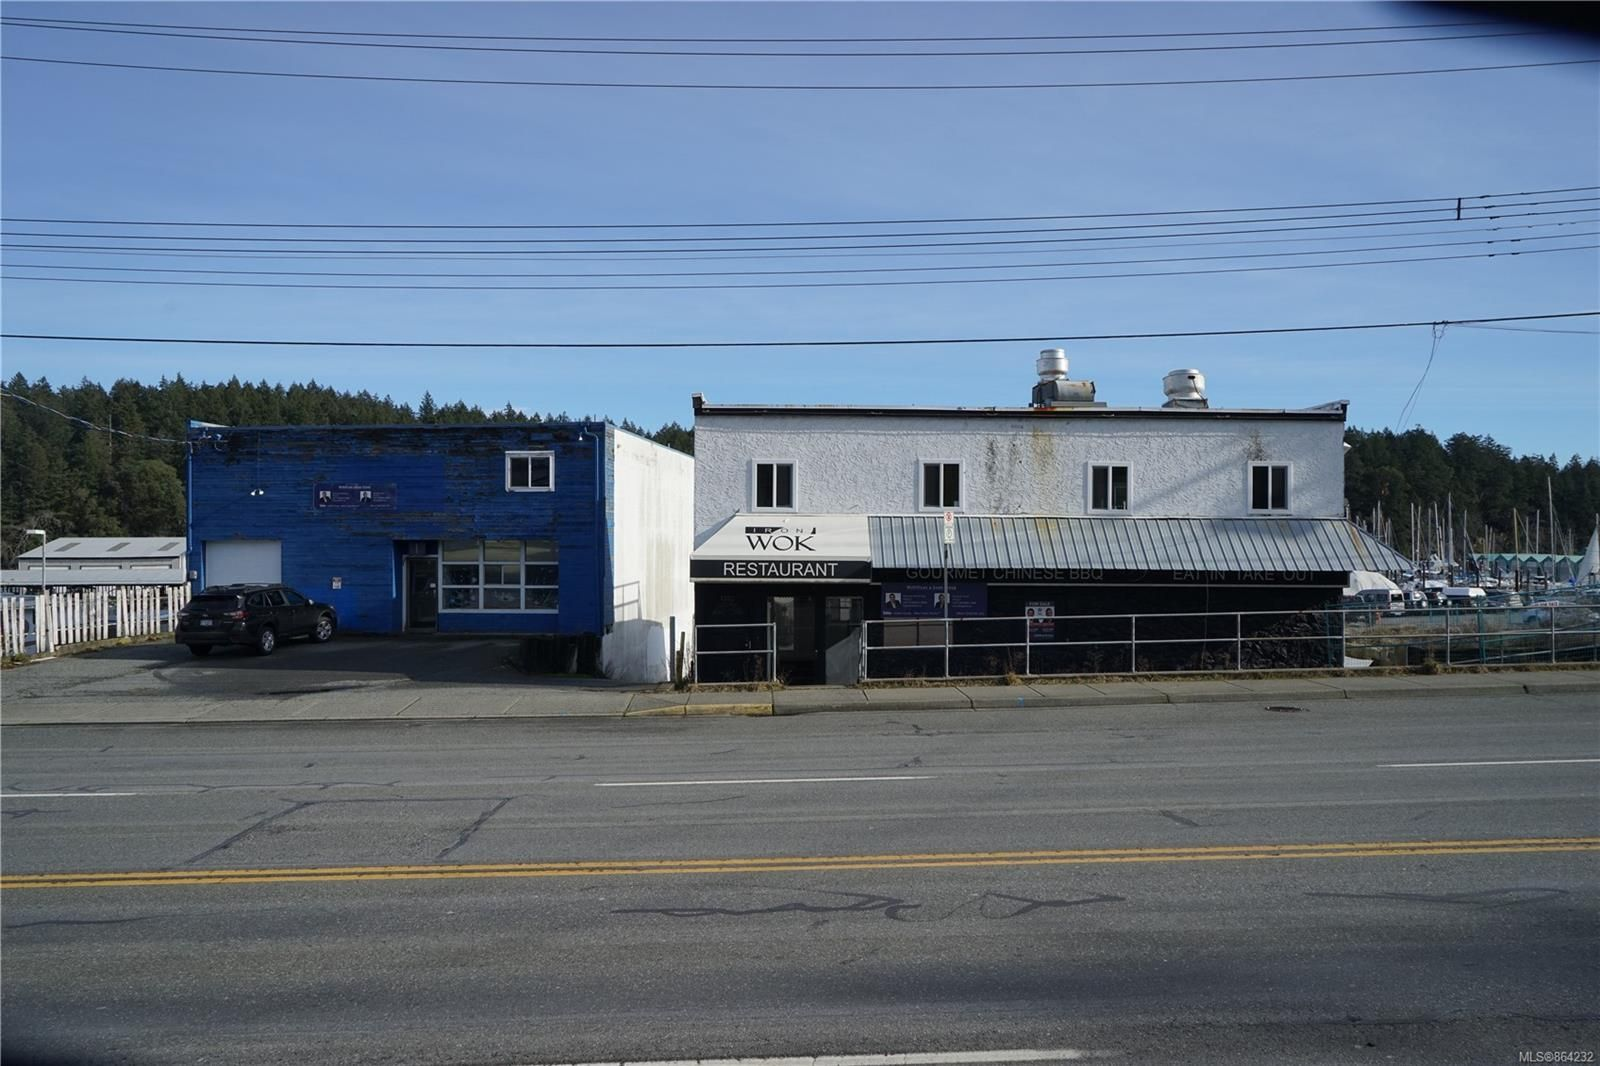 Main Photo: 1340-1370 Stewart Ave in : Na Brechin Hill Mixed Use for sale (Nanaimo)  : MLS®# 864232